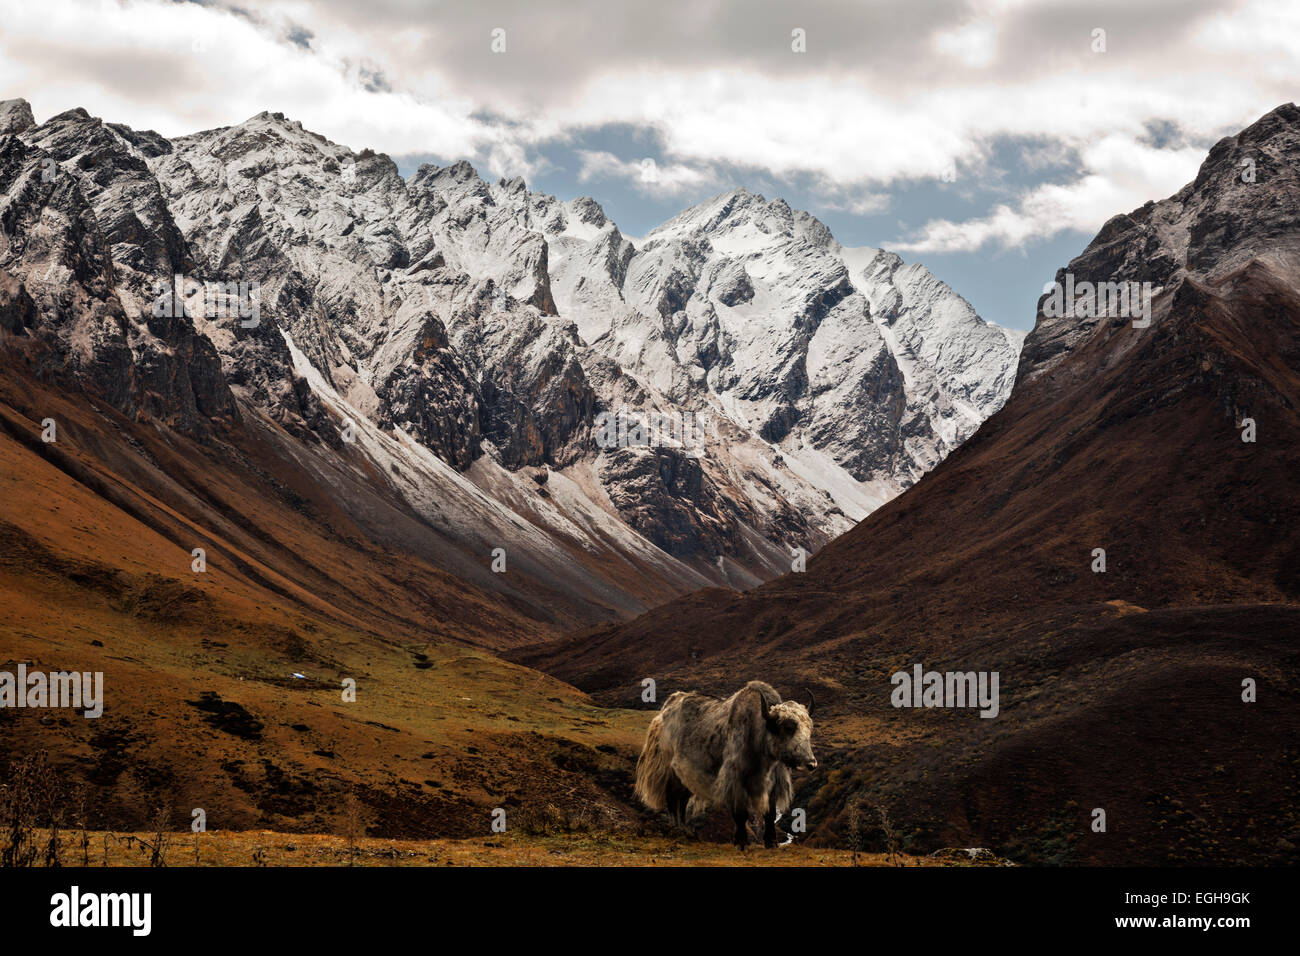 BU00214-00...BHUTAN - A yak grazing on the open hillsides of the valley of the Tshophu lakes. - Stock Image